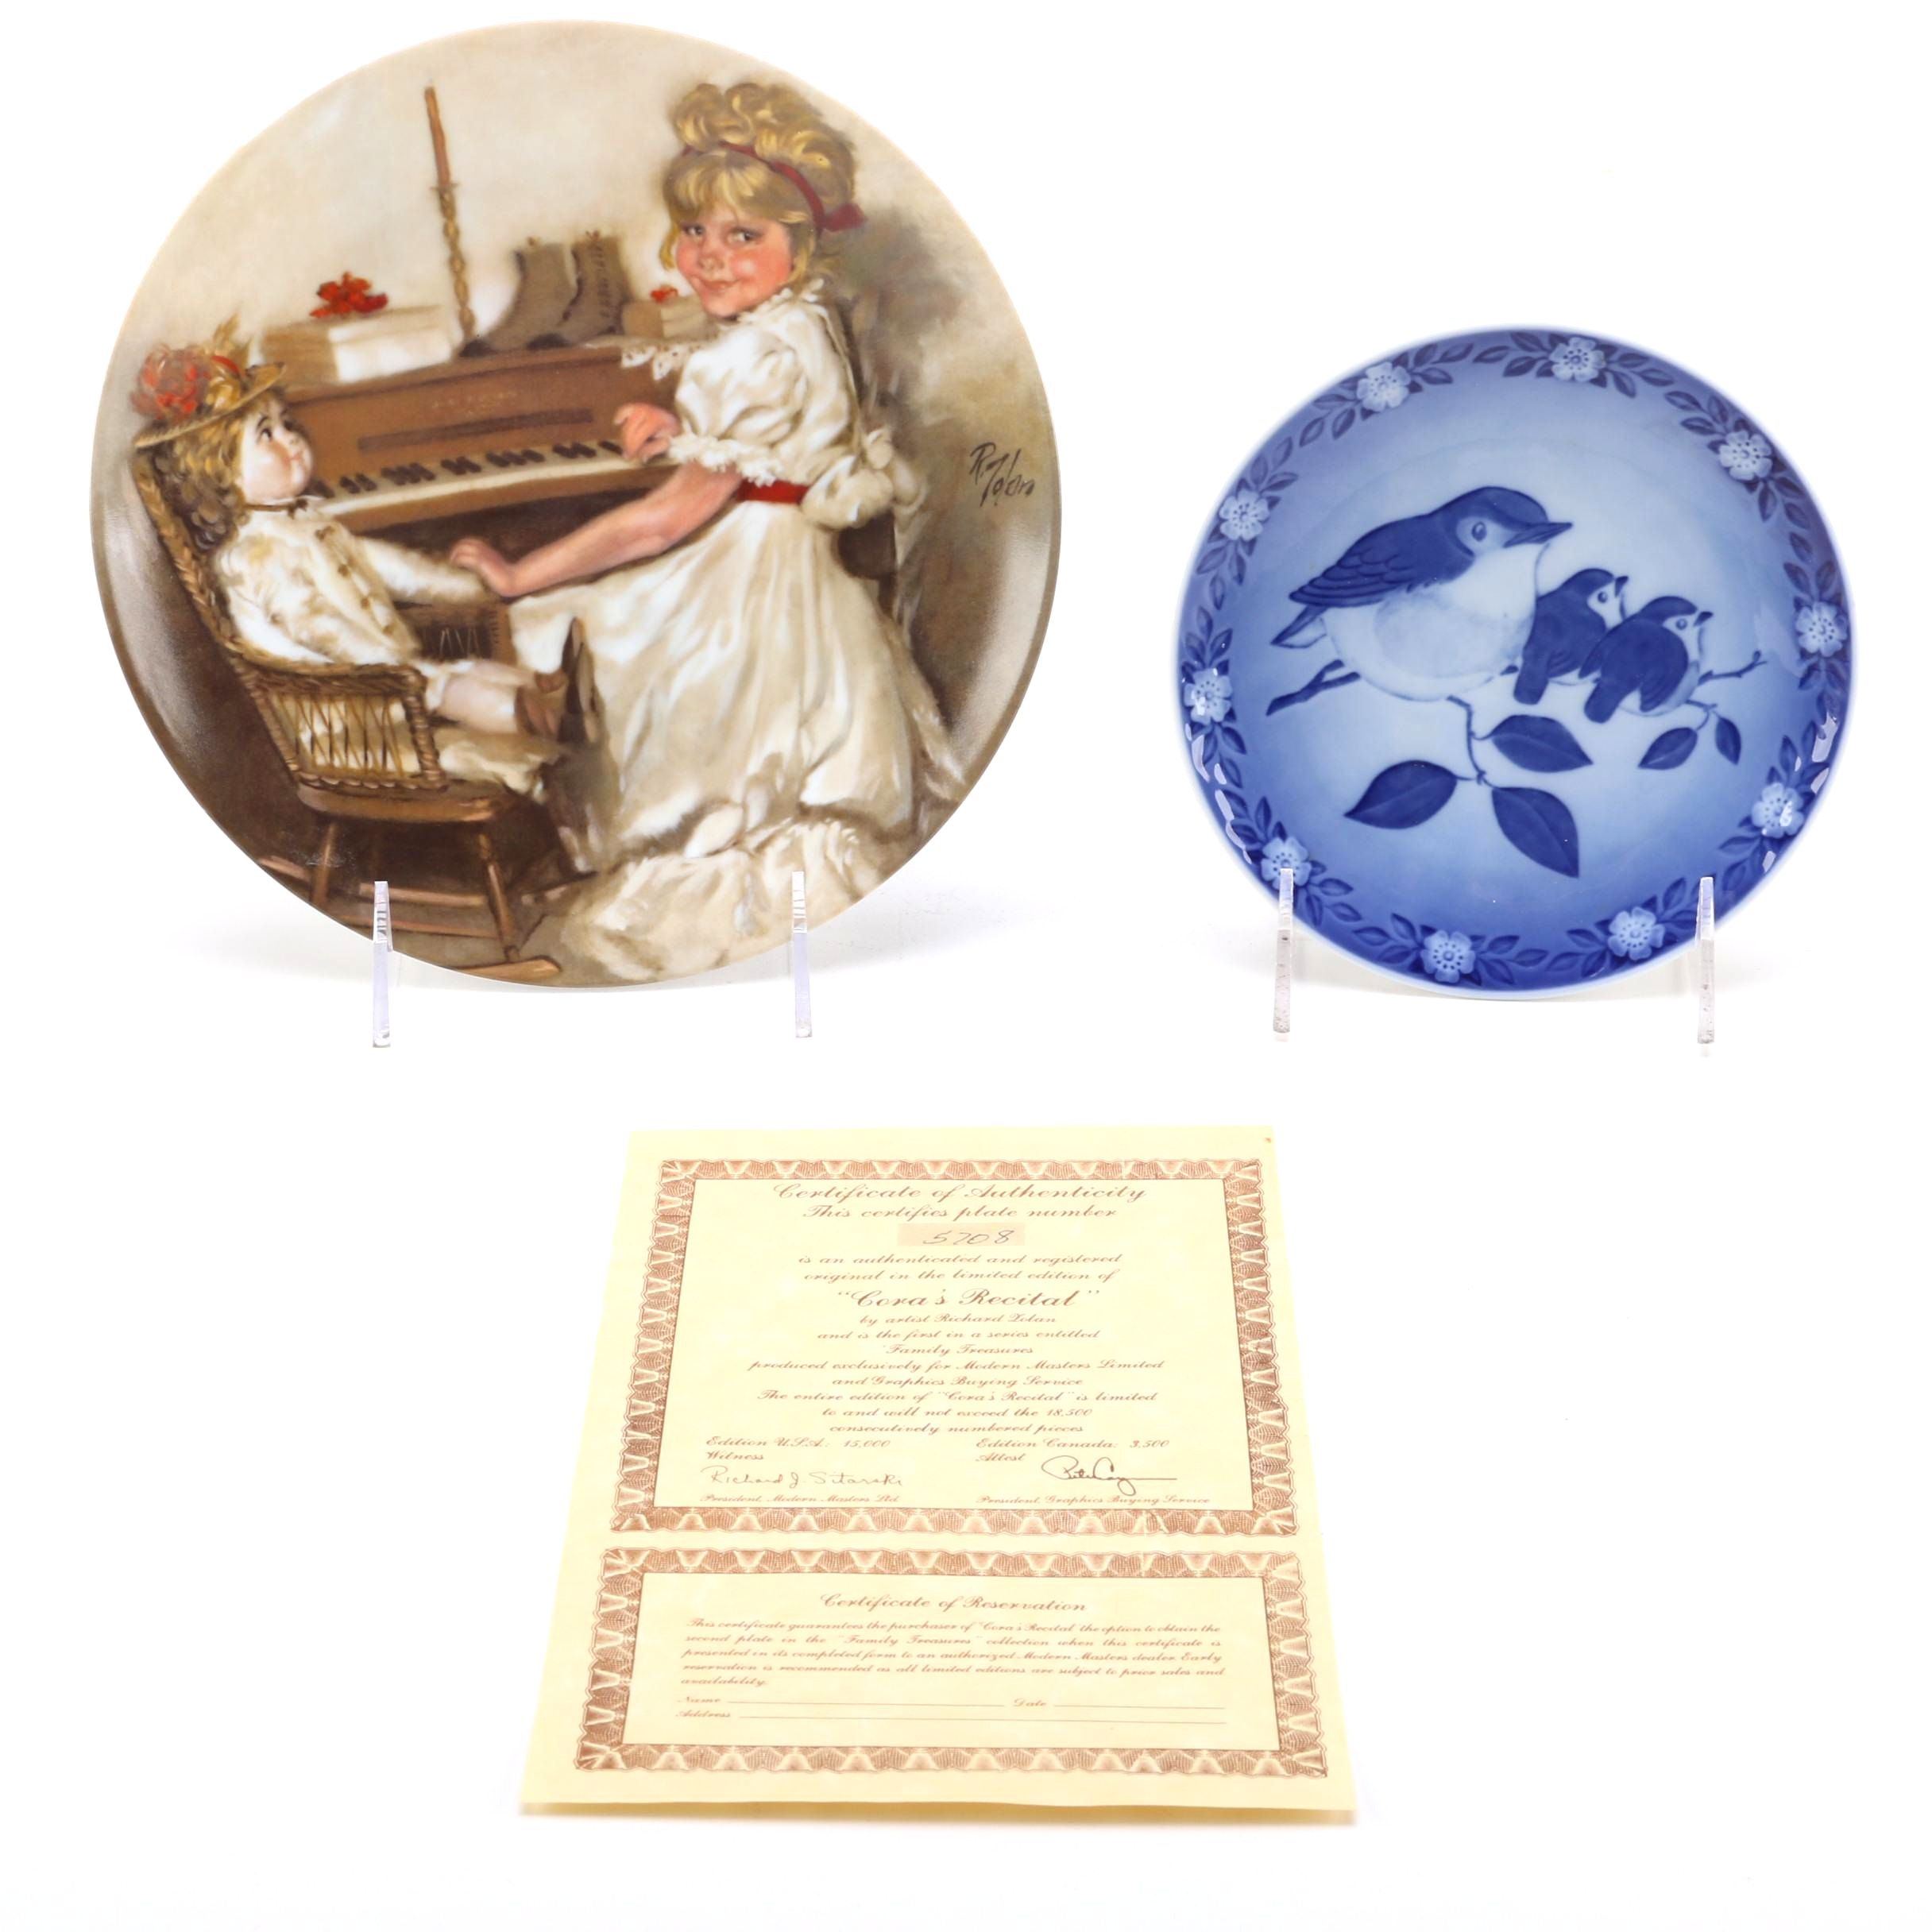 China and Porcelain Collector's Plates Including Royal Copenhagen